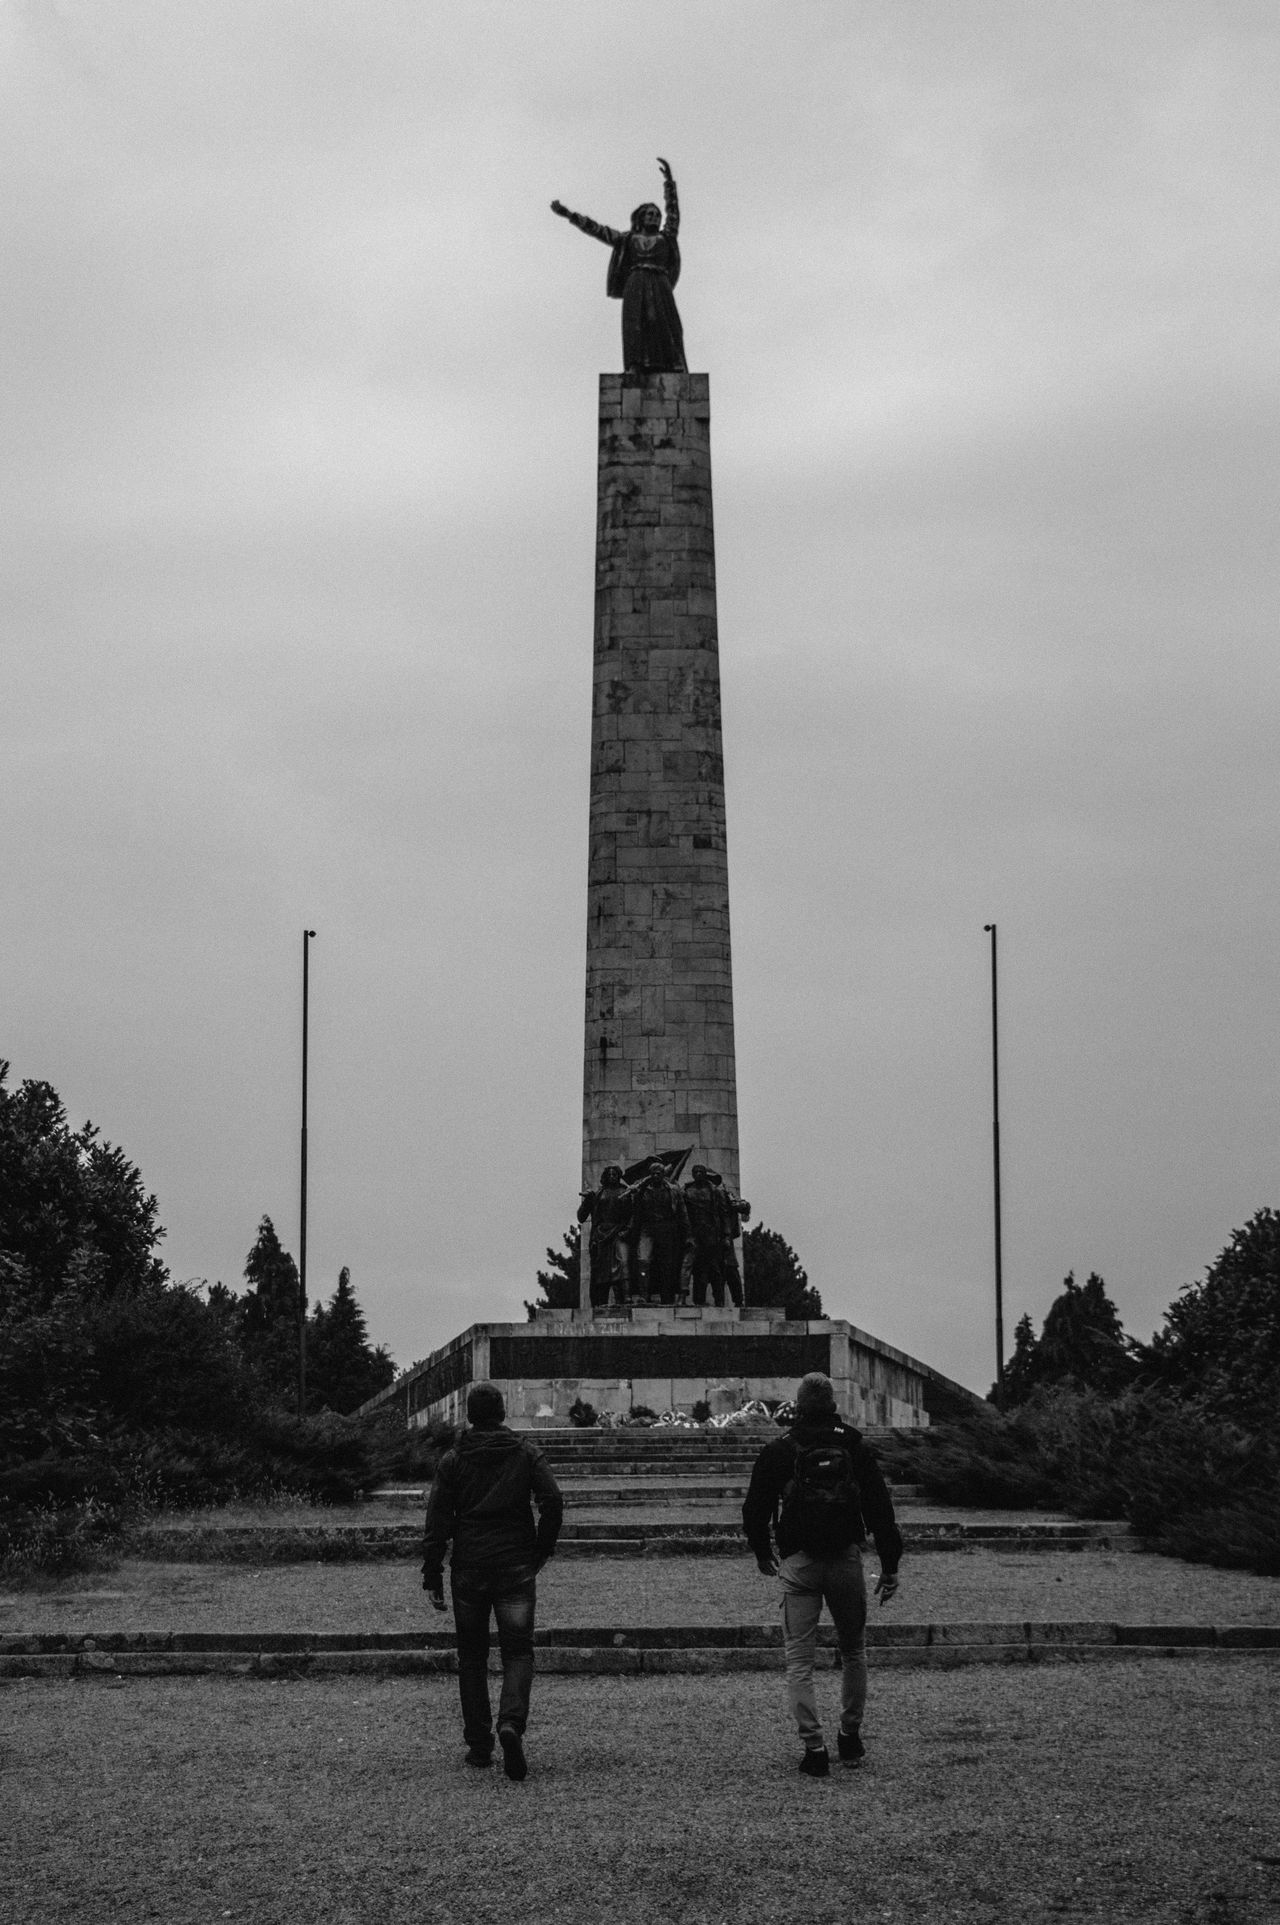 Beautiful stock photos of traurig, men, monument, silhouette, outdoors